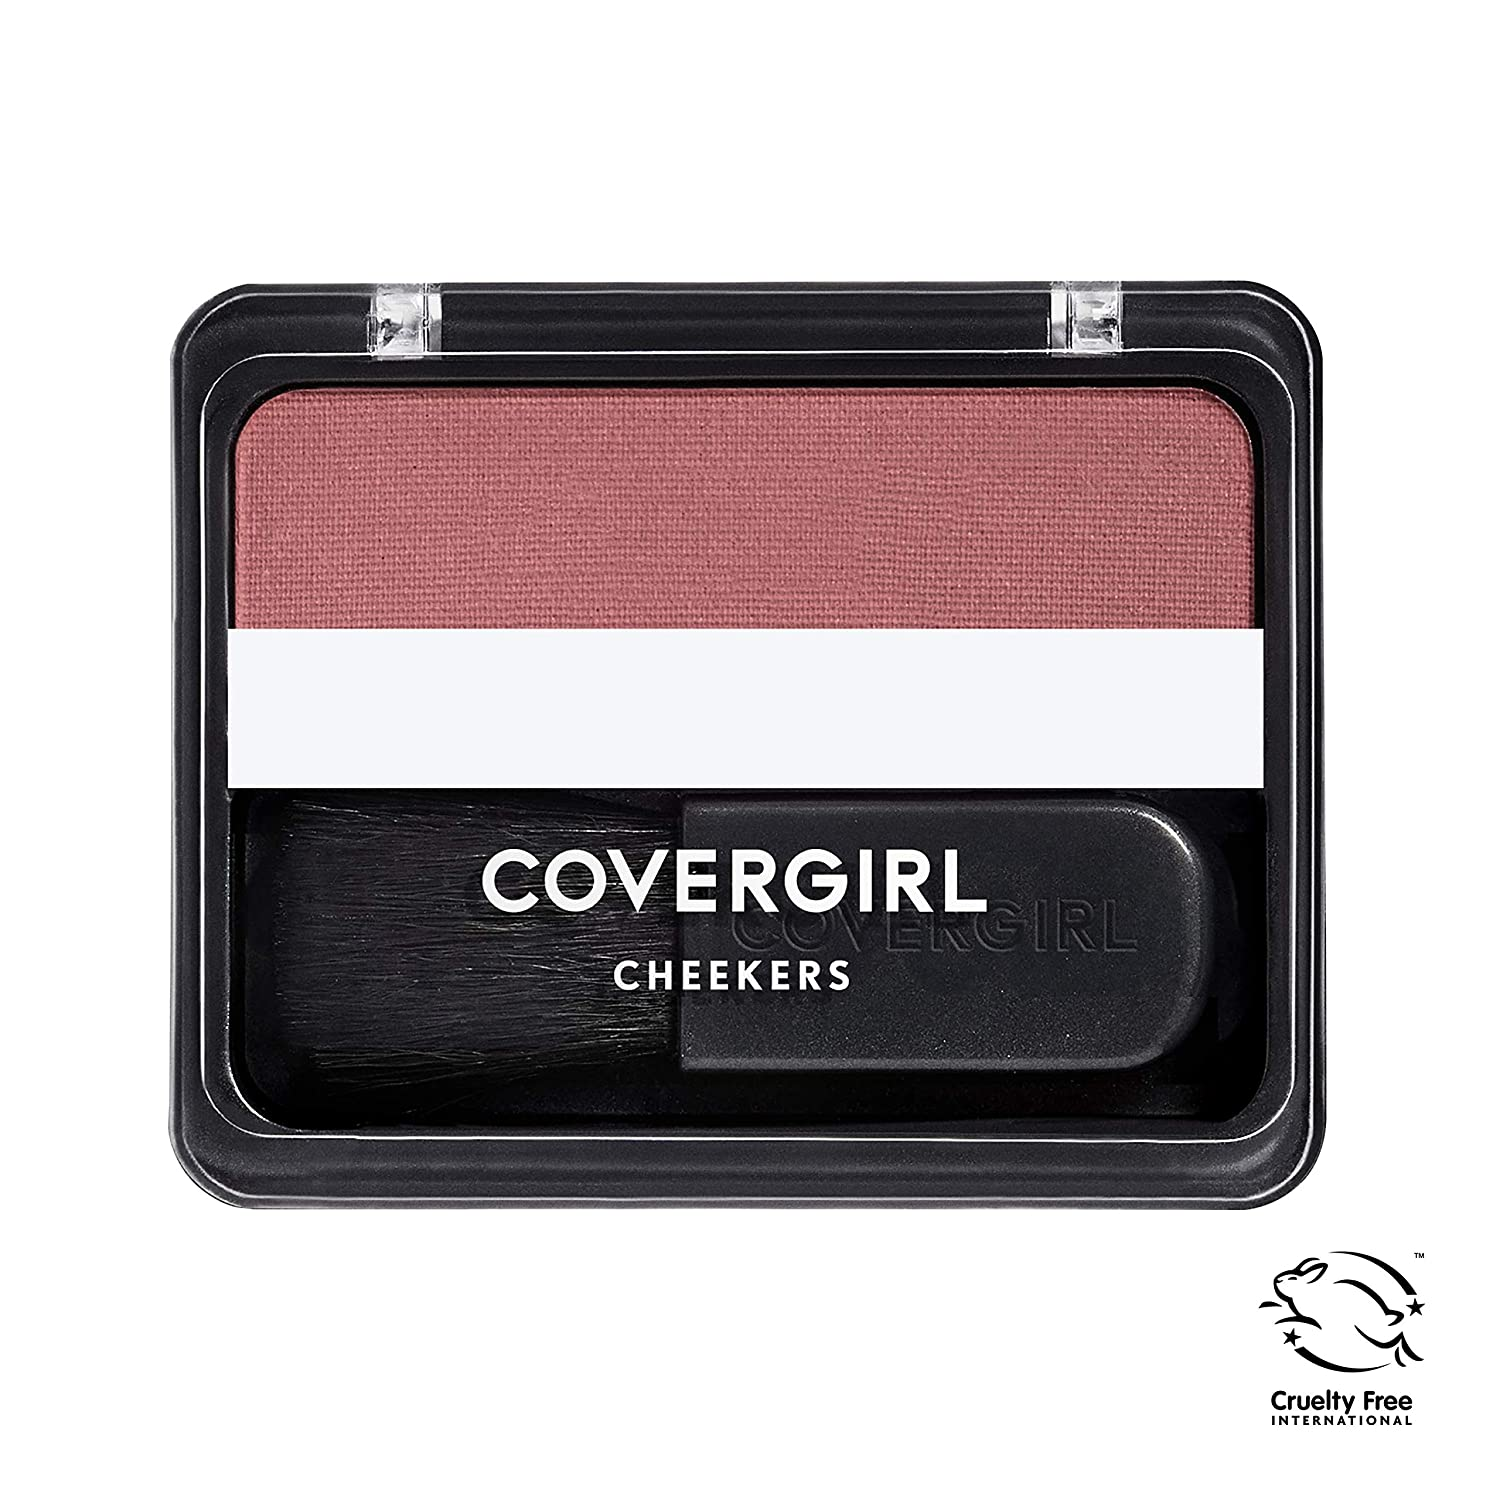 COVERGIRL Cheekers Blendable Powder Blush Rock 'n Rose, .12 oz (packaging may vary), 1 Count